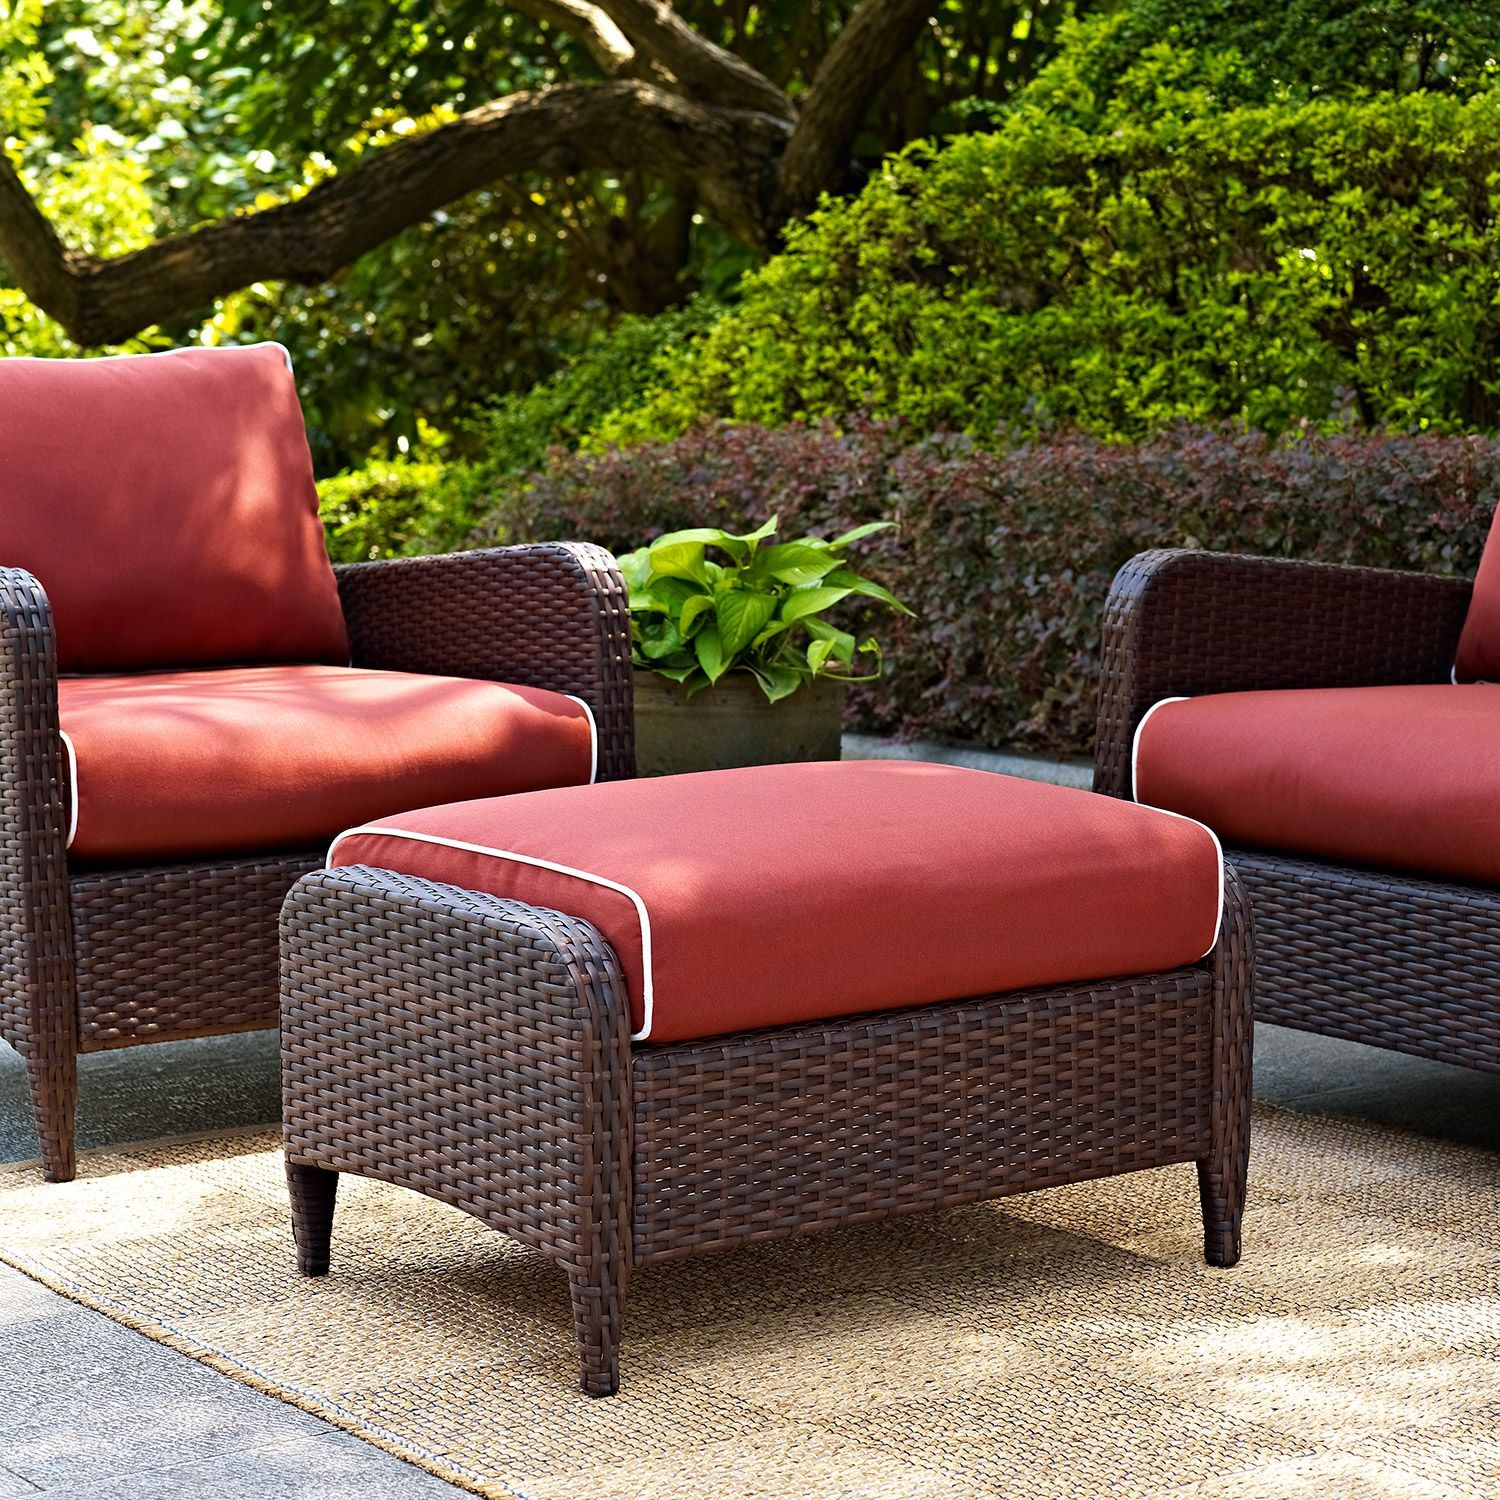 Kiawah Outdoor Wicker Ottoman Brown D Co7119 Br